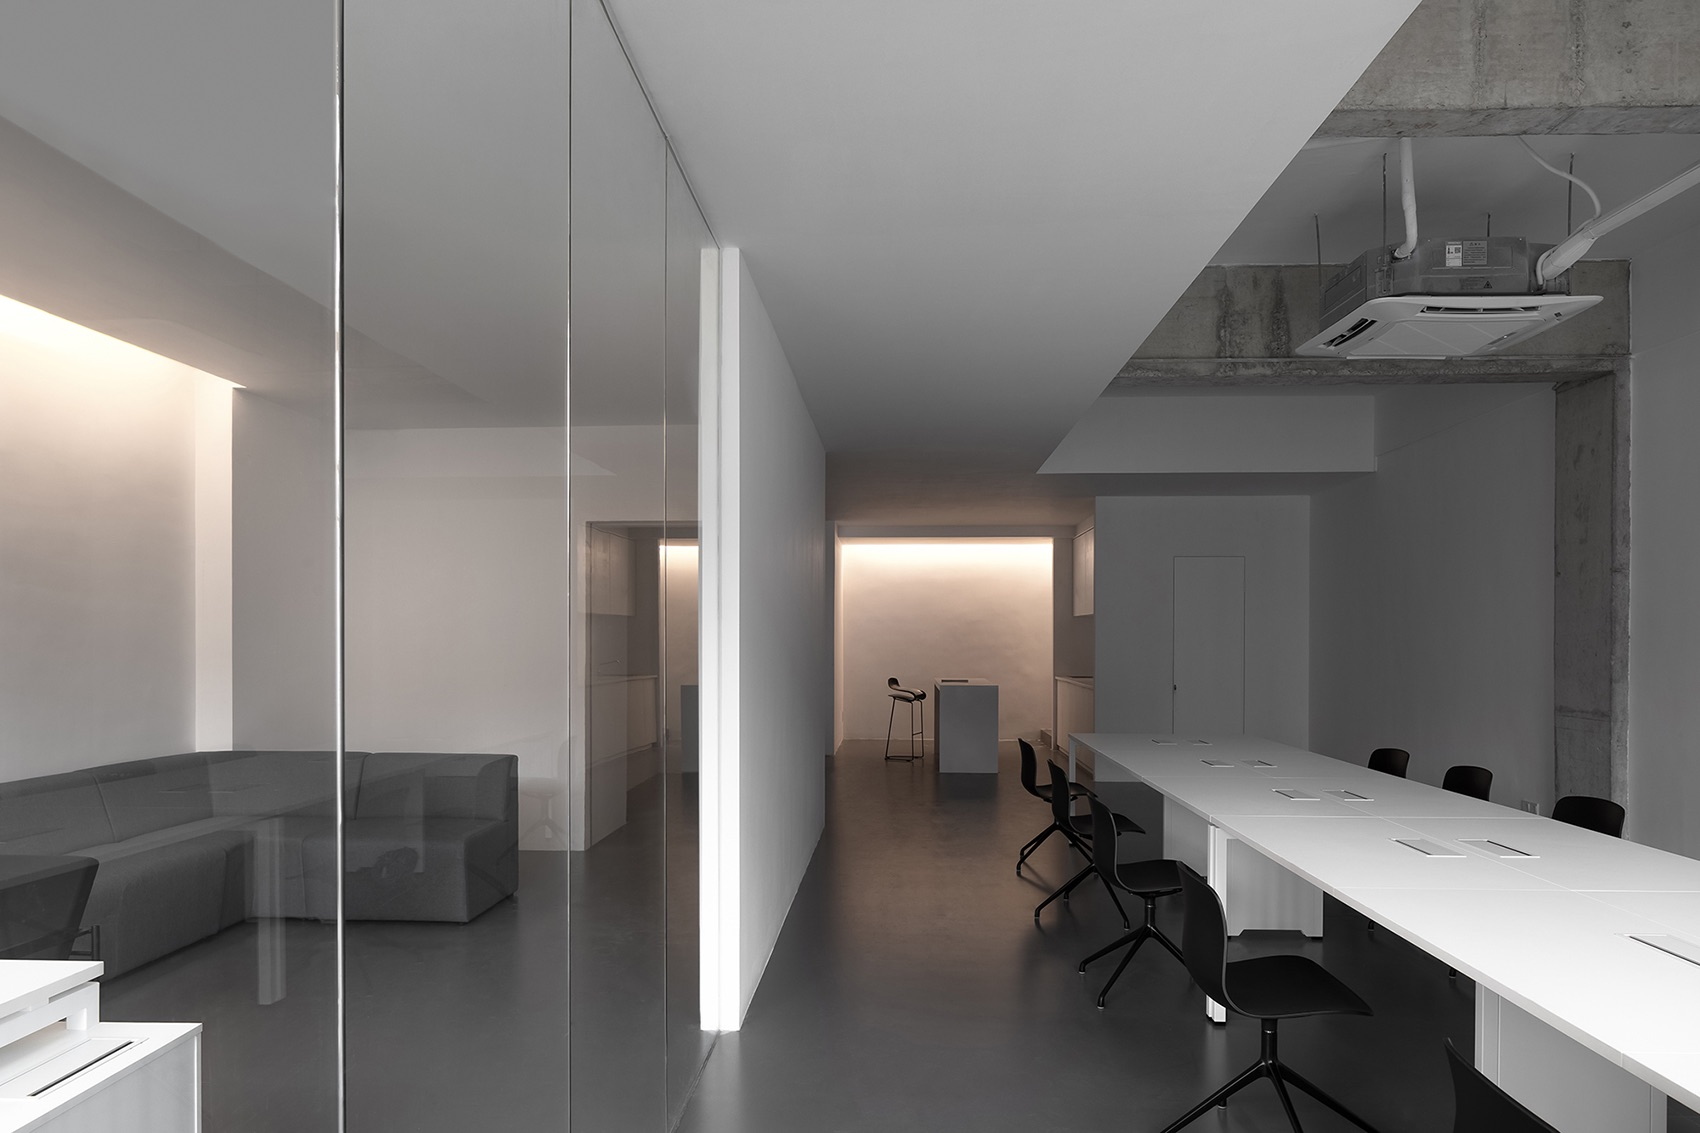 jyc-clothing-office-8